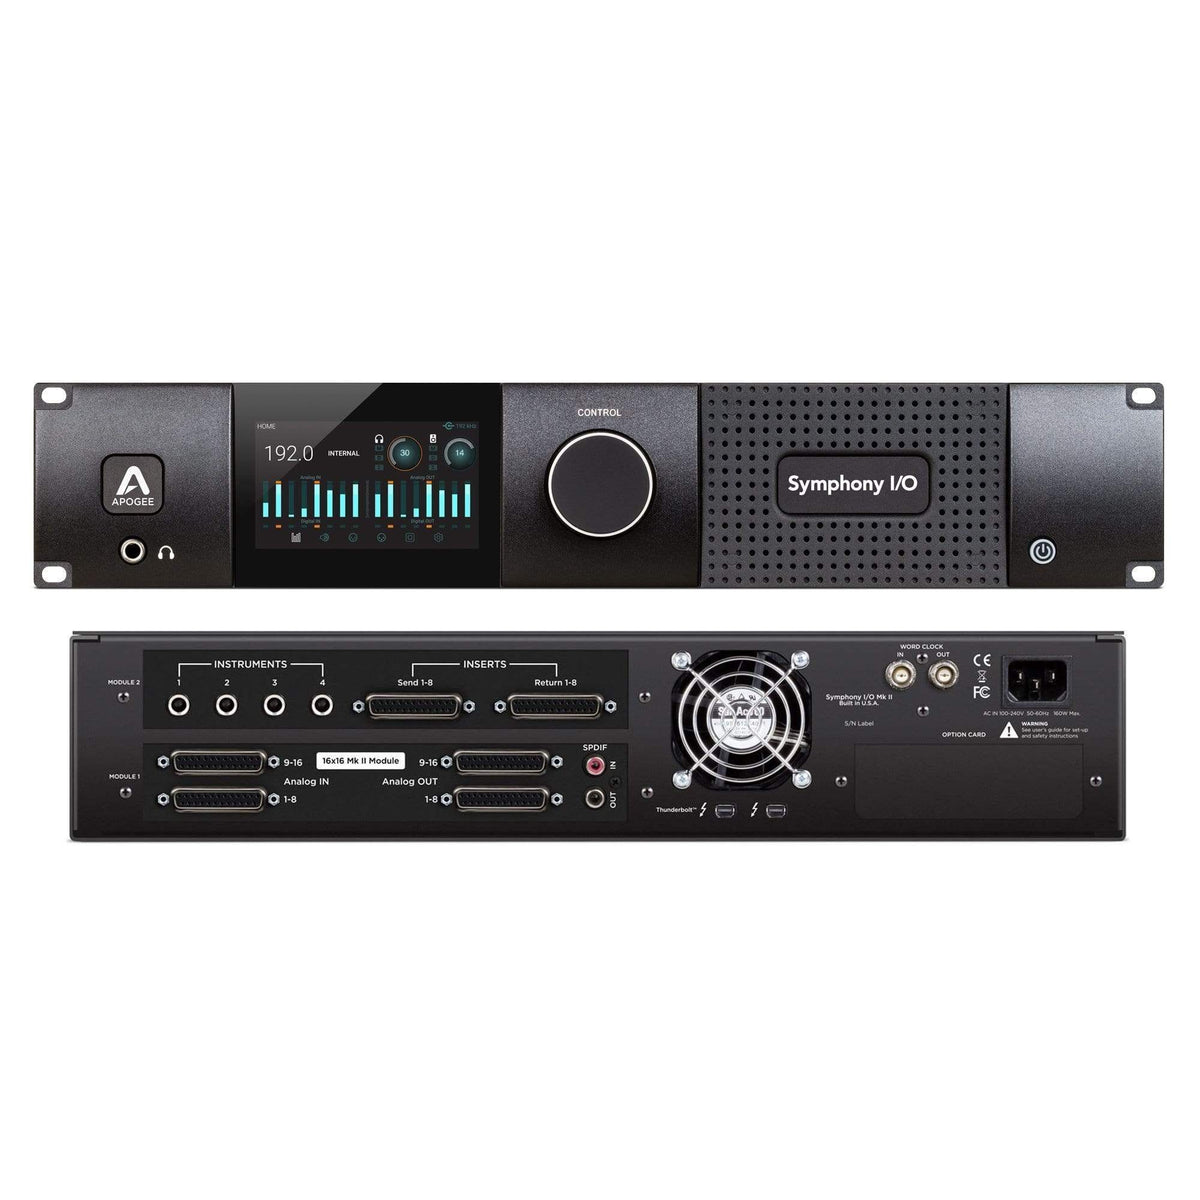 Apogee Electronics Audio Interface APOGEE Symphony I/O MKII Thunderbolt Chassis with 16 Analog In + 16 Analog Out+16 Analog In + 16 Analog Out